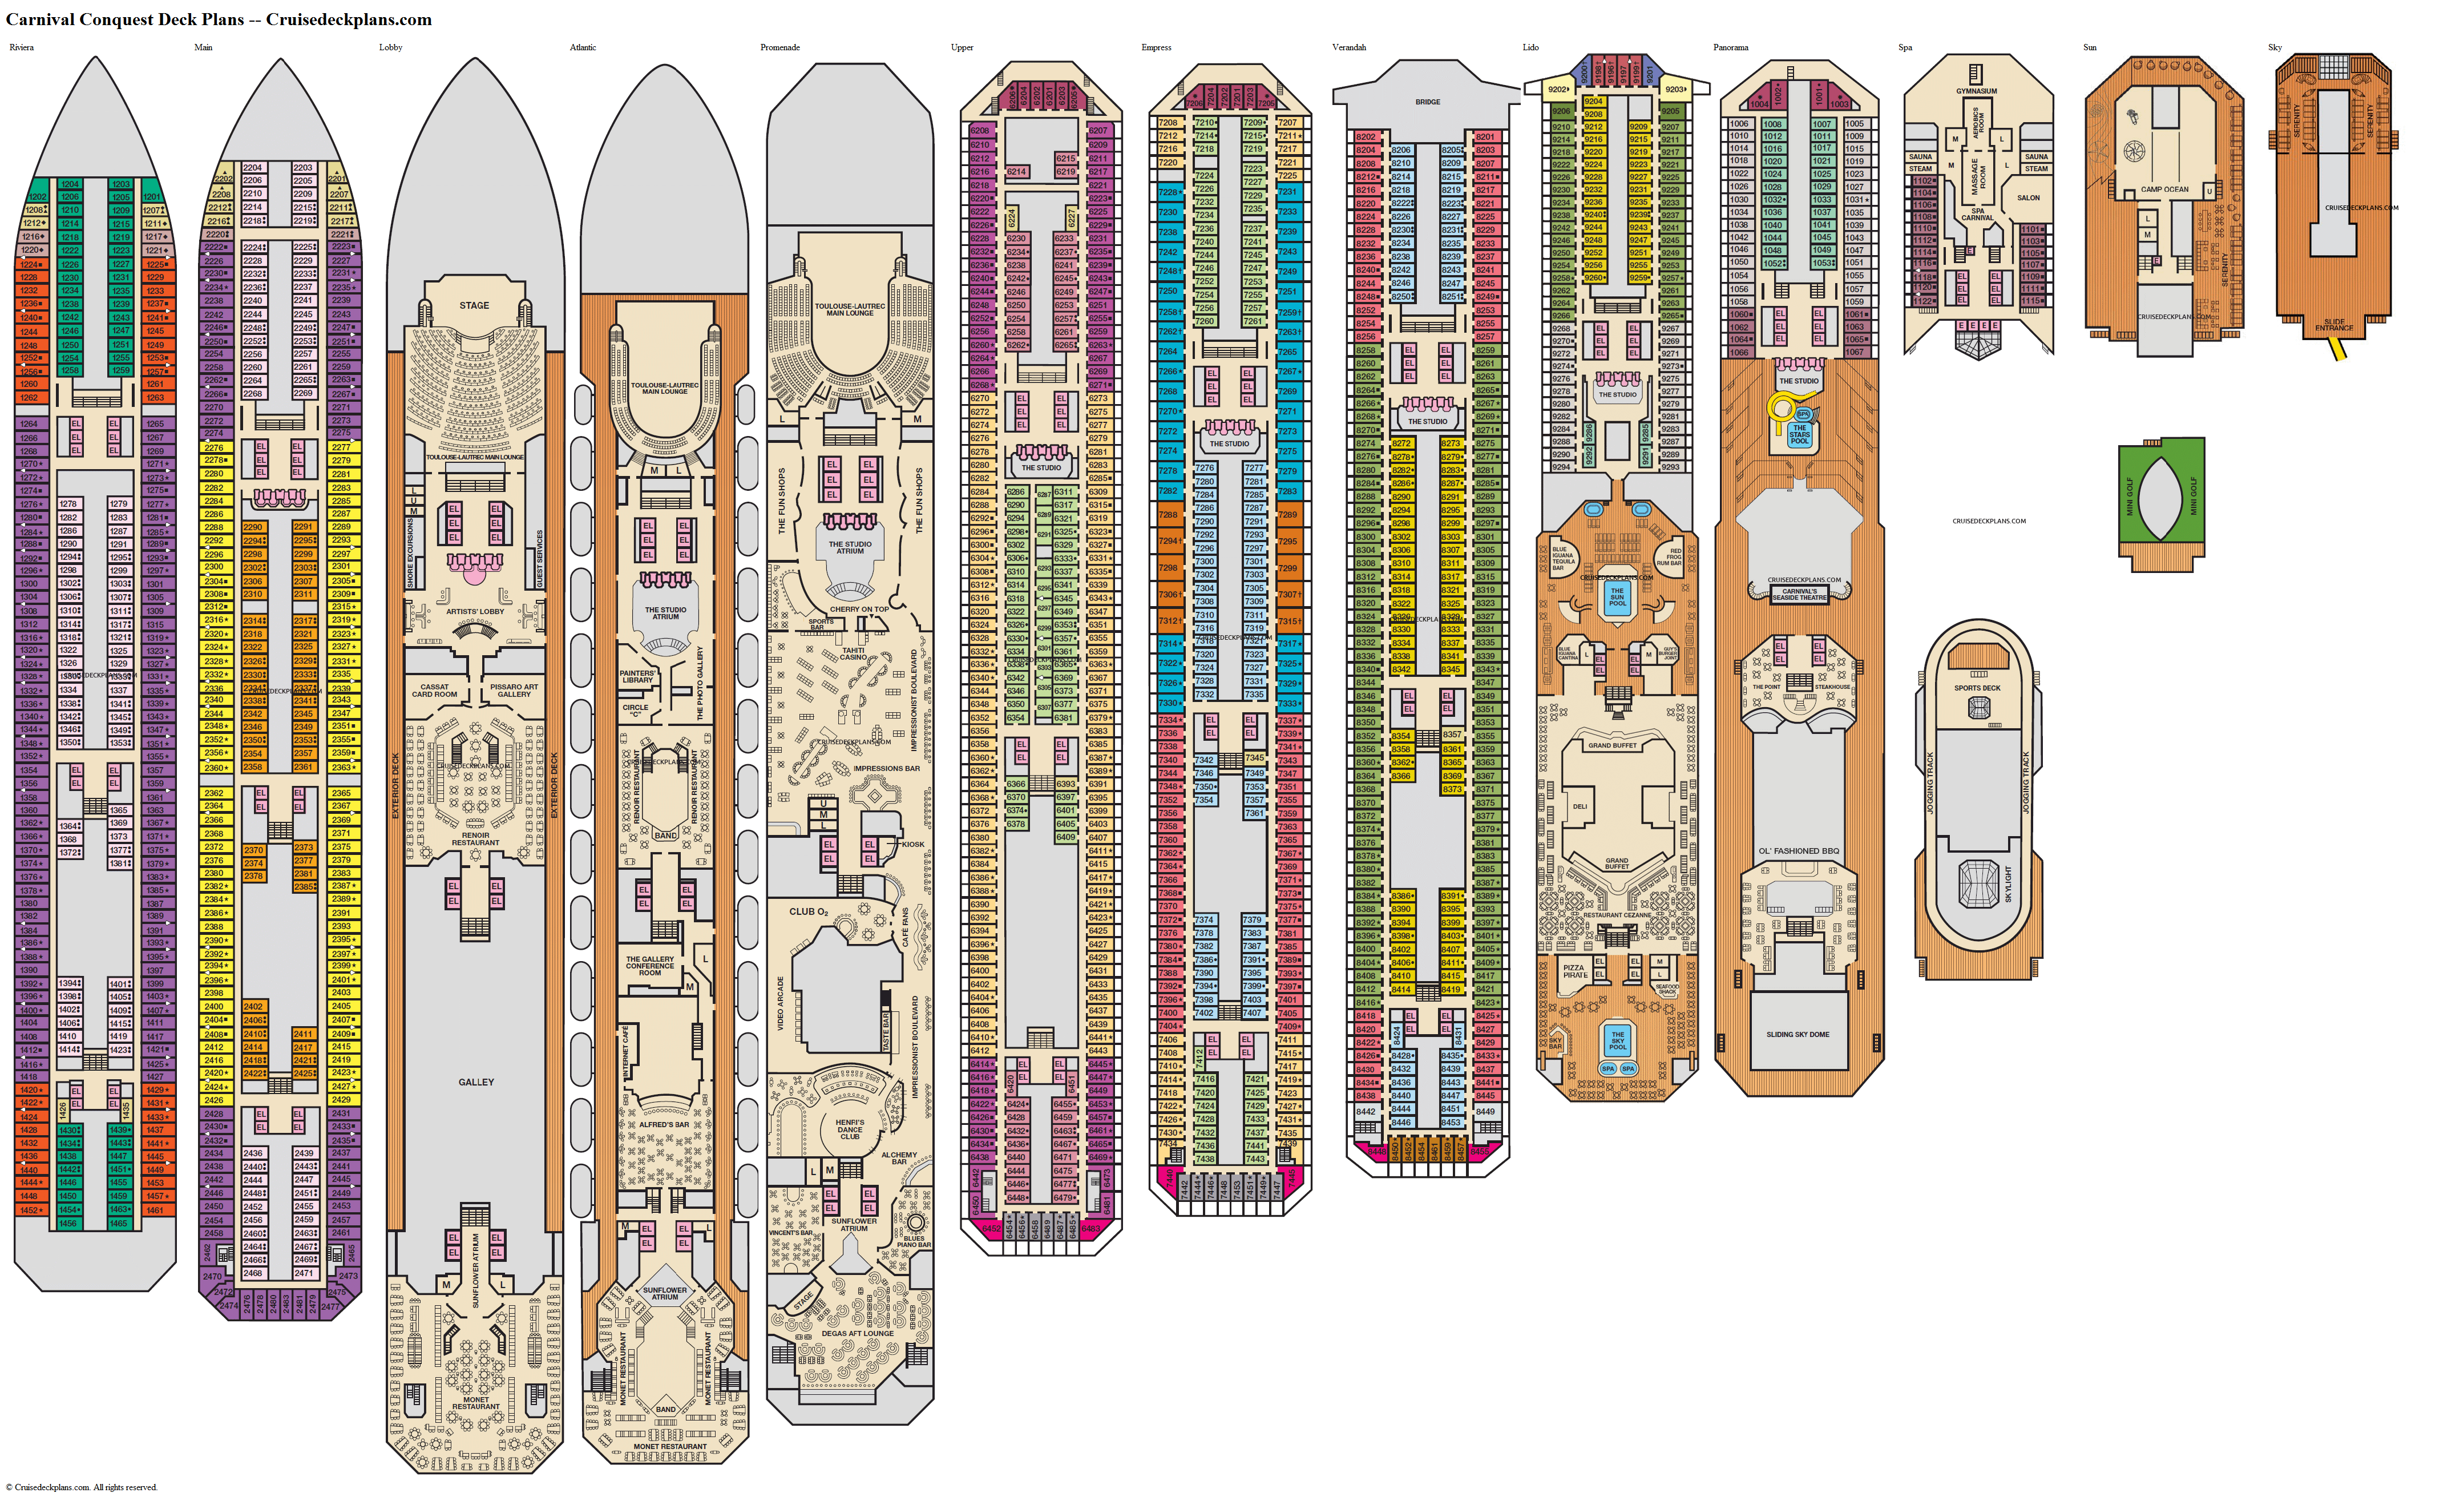 Carnival Conquest deck plans image